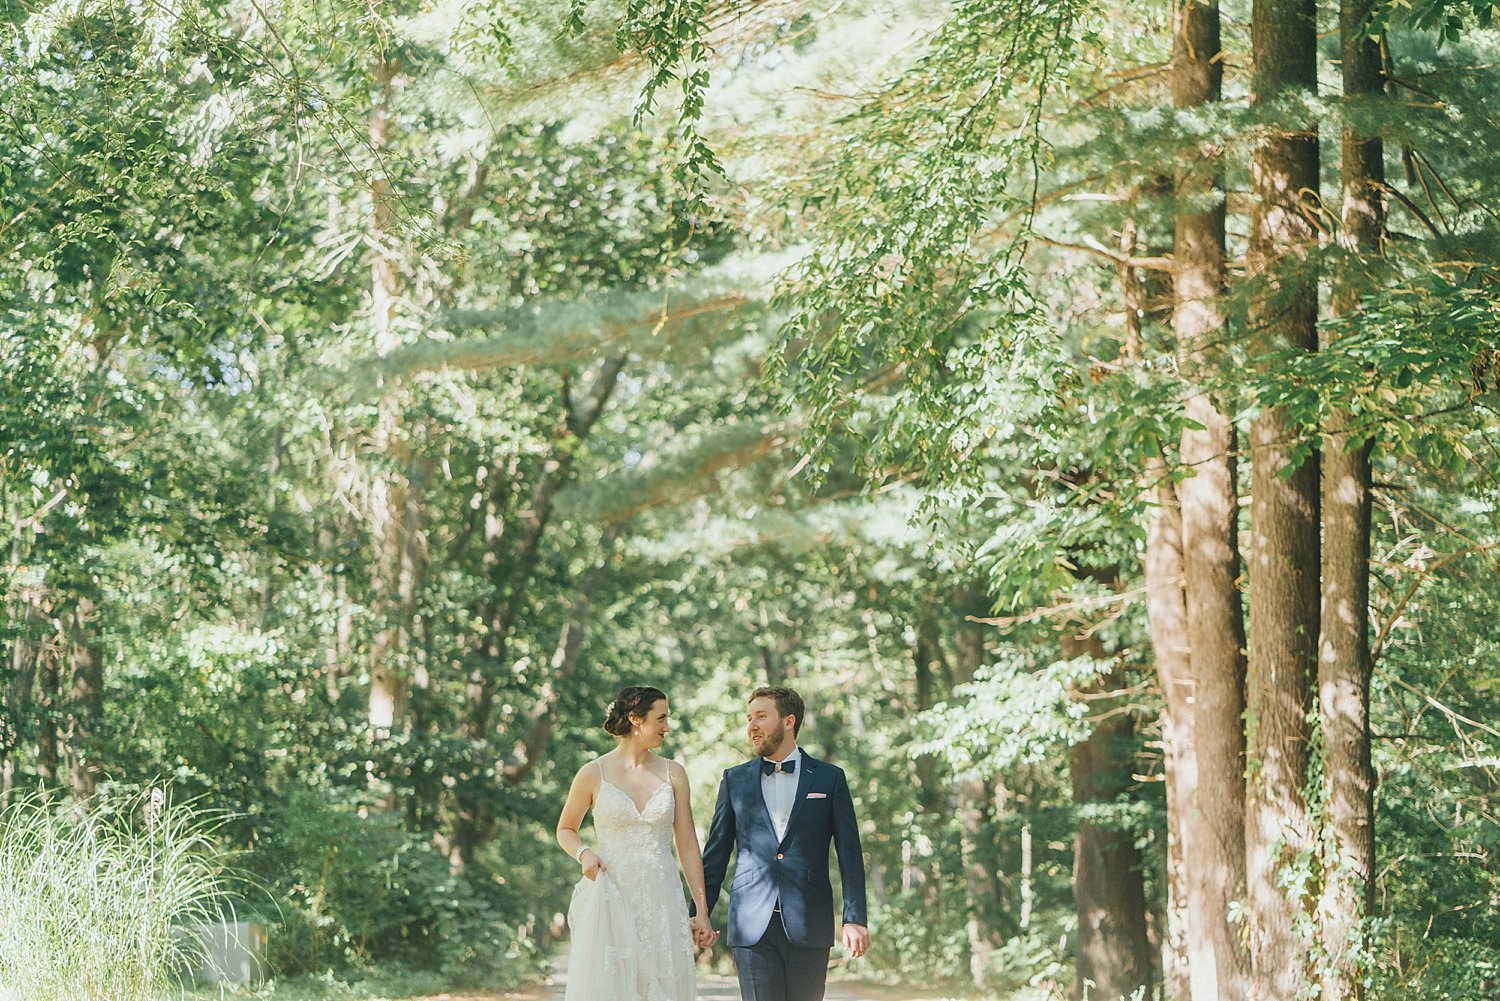 nyc-wedding-photography-nj-tri-state-cinematography-intothestory-by-moo-jae_0357.jpg